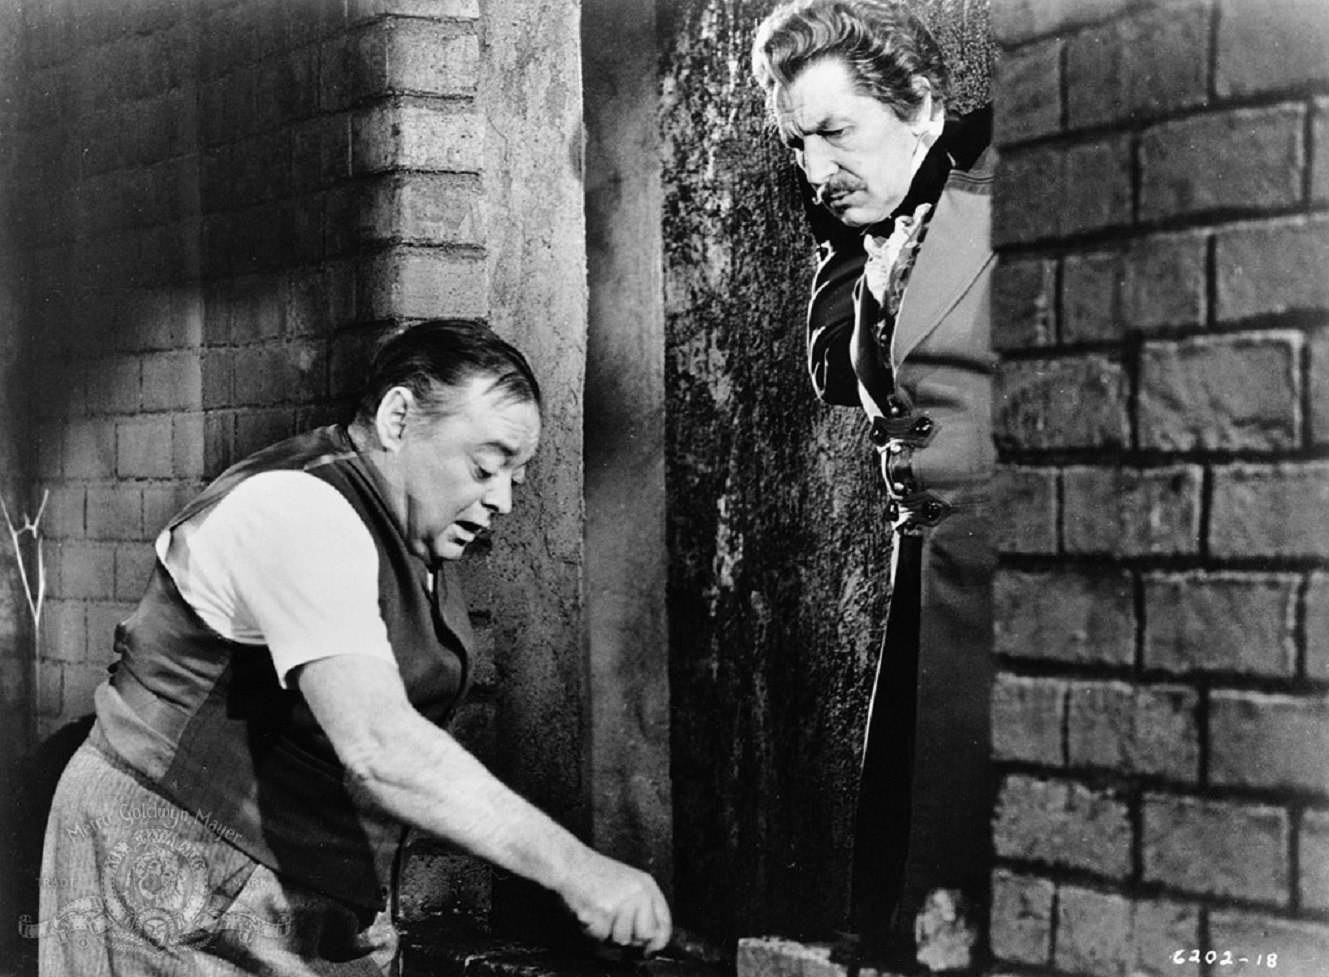 Montresor Herringbone (Peter Lorre) bricks up his wife's lover Fortunato (Vincent Price) in The Black Cat episode of Tales of Terror (1962)